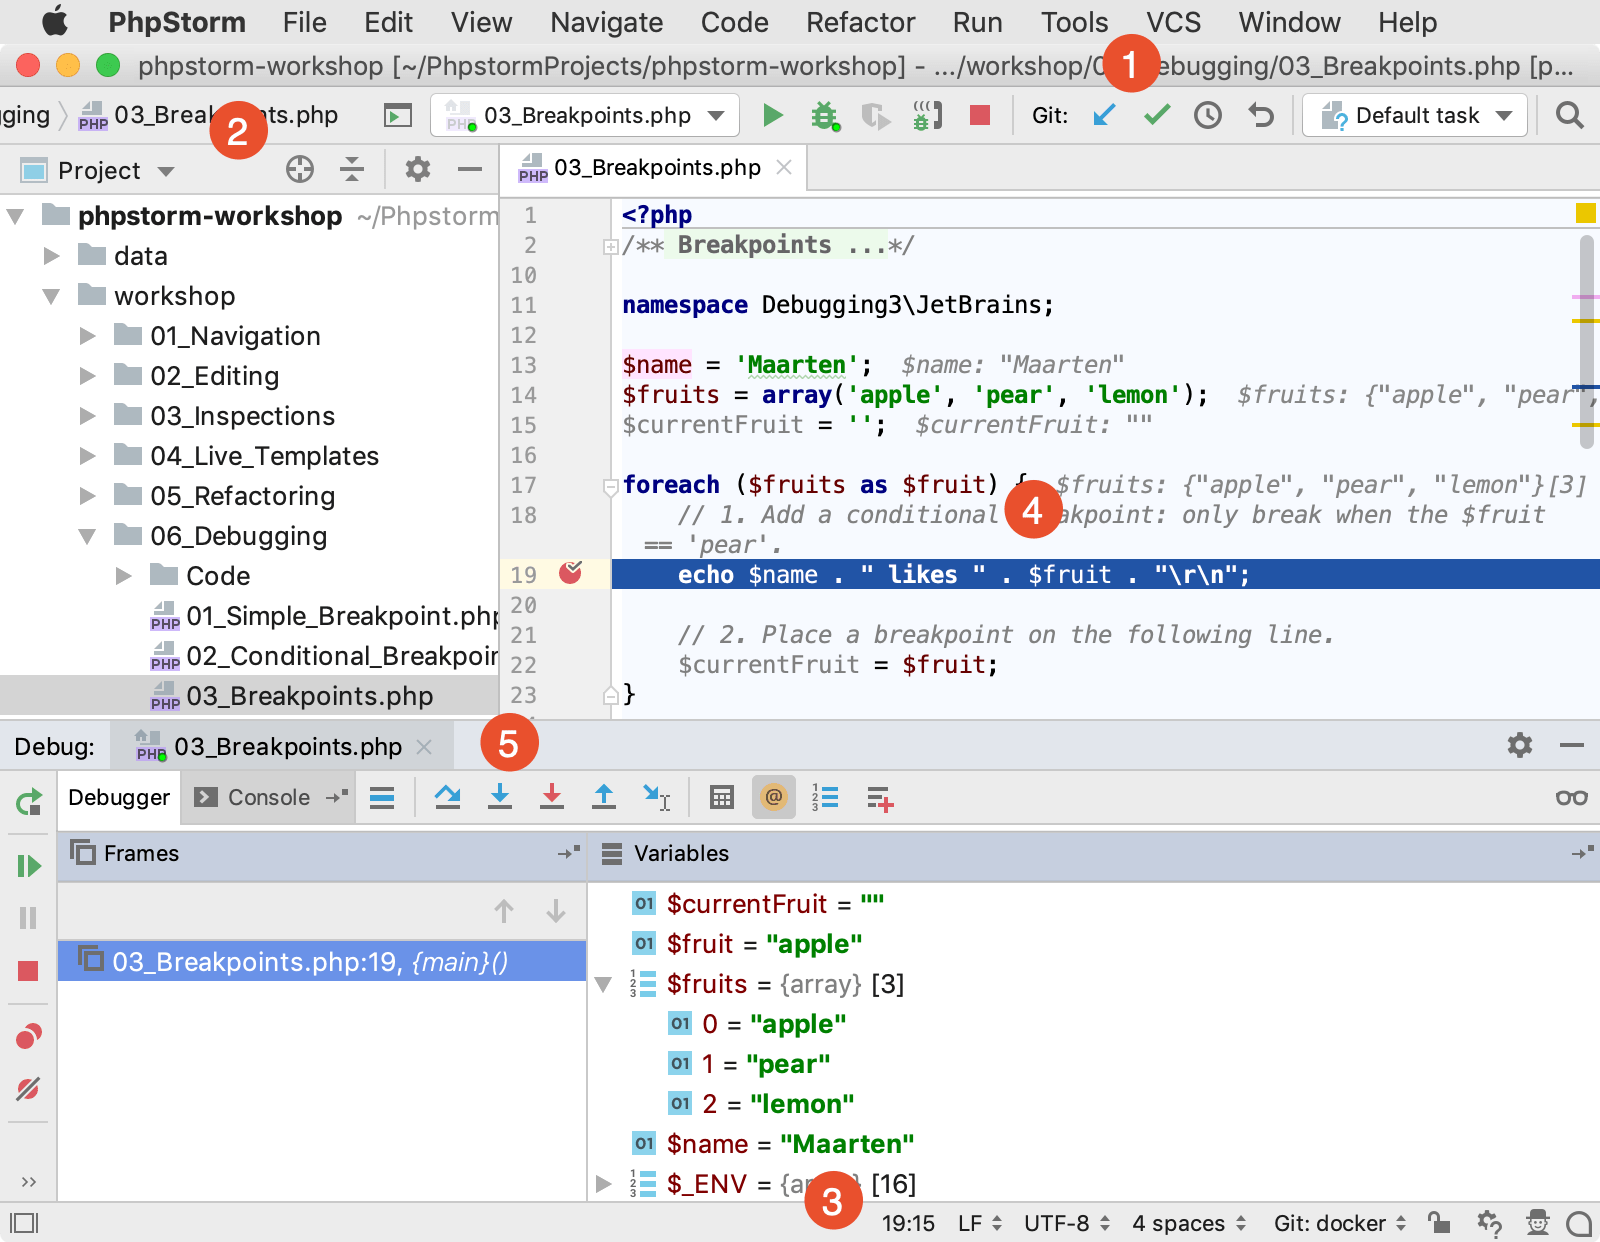 PhpStorm user interface overview